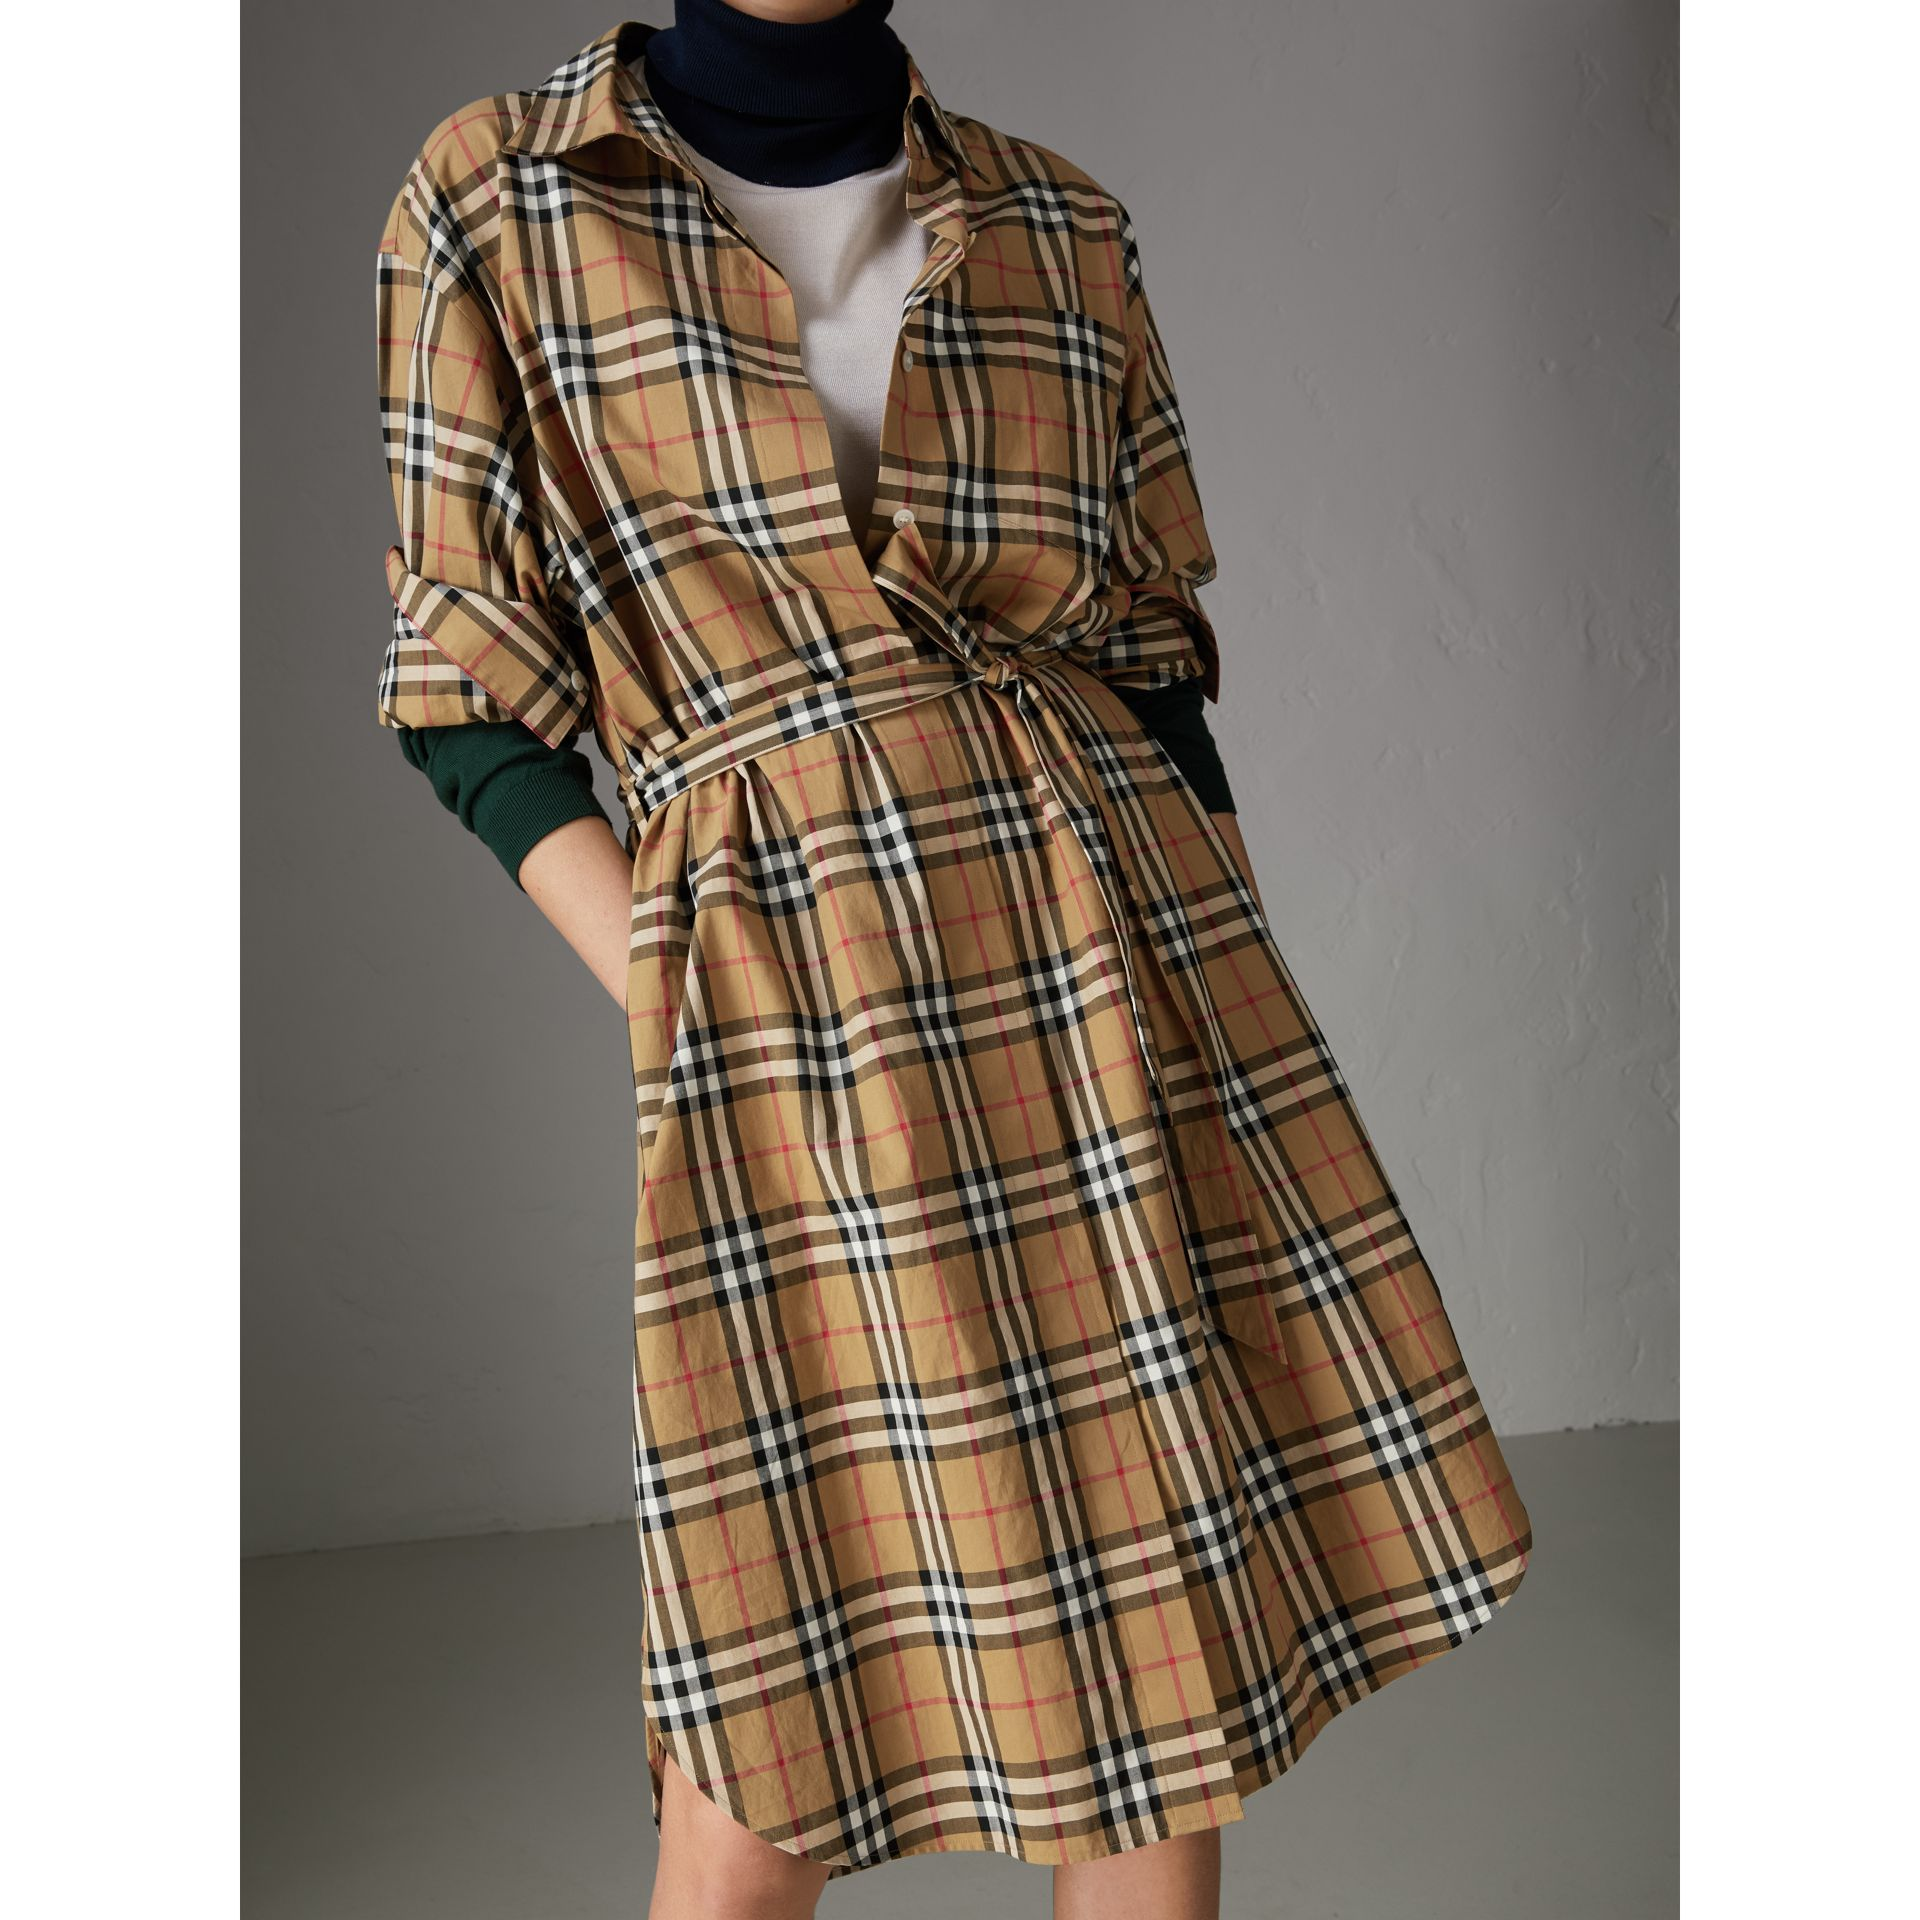 Tie-waist Vintage Check Cotton Shirt Dress in Antique Yellow - Women | Burberry United Kingdom - gallery image 1